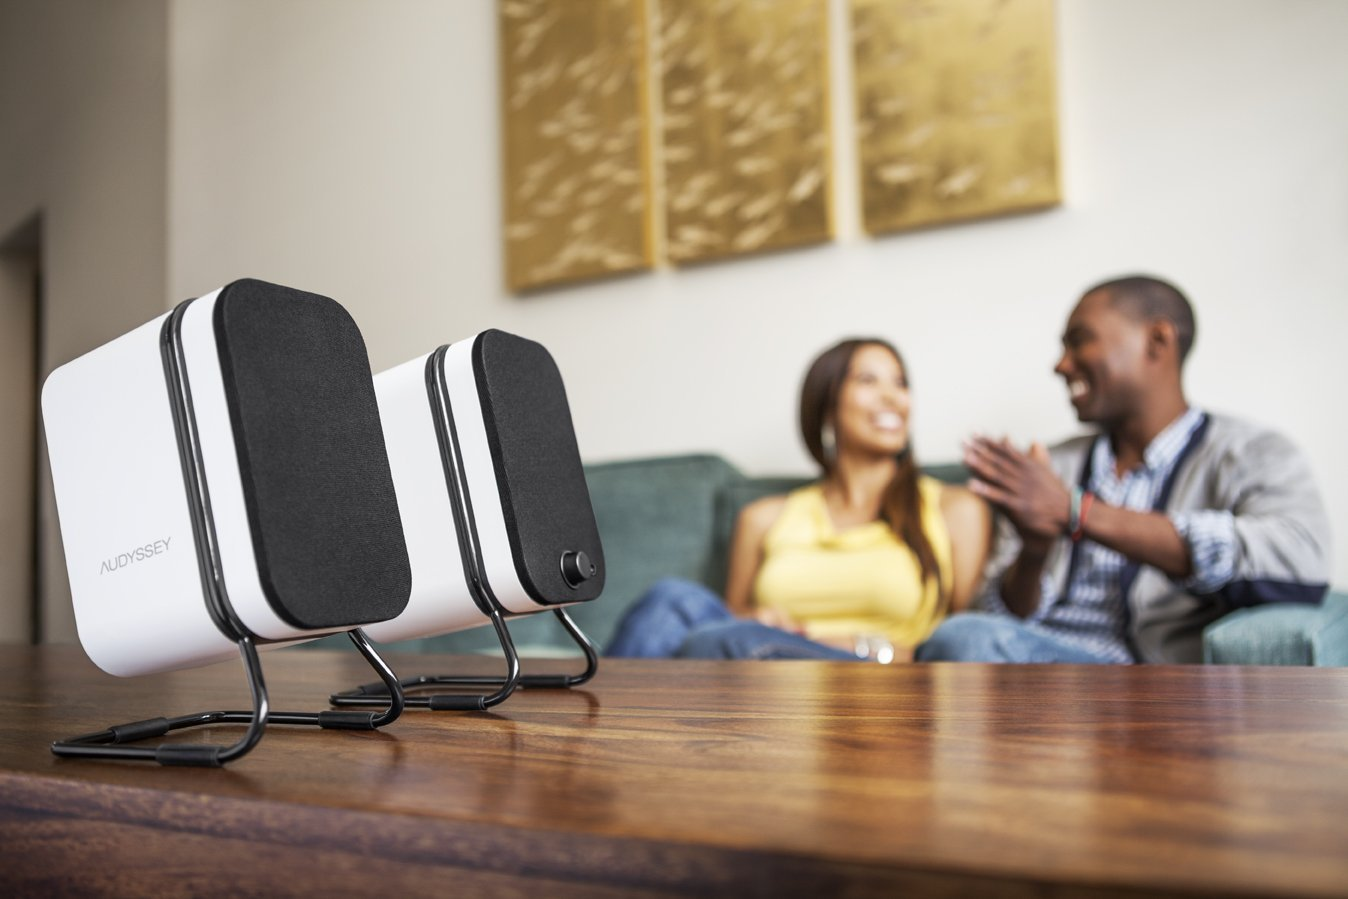 Audyssey Bluetooth Computer Speakers